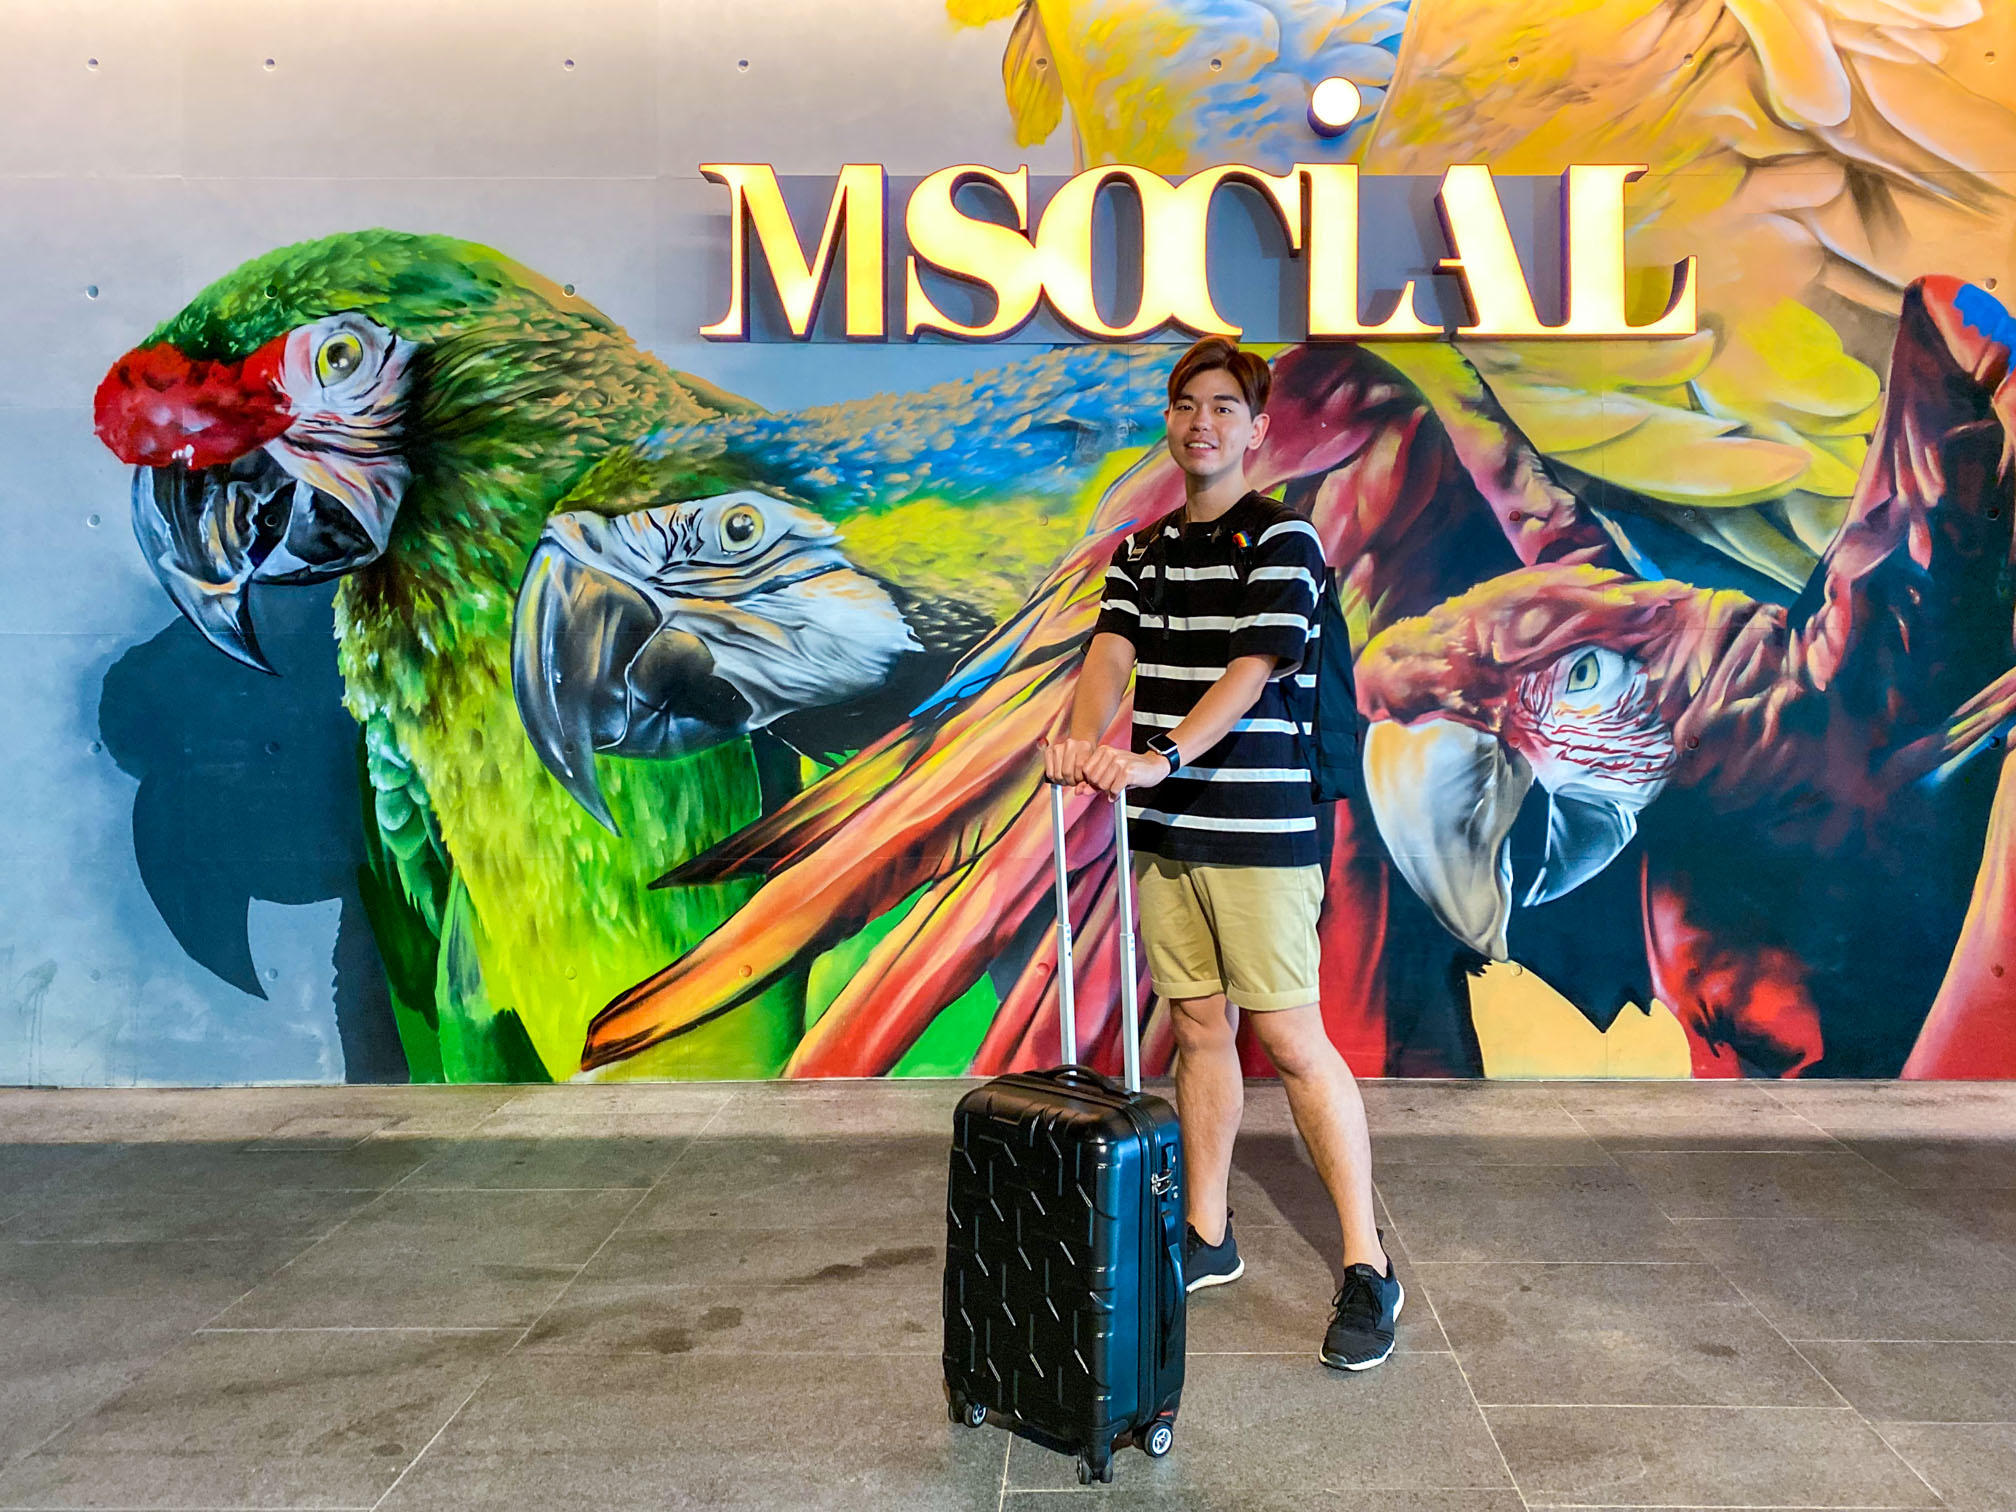 MSOCIAL-Singapore-Staycation-darrenbloggie